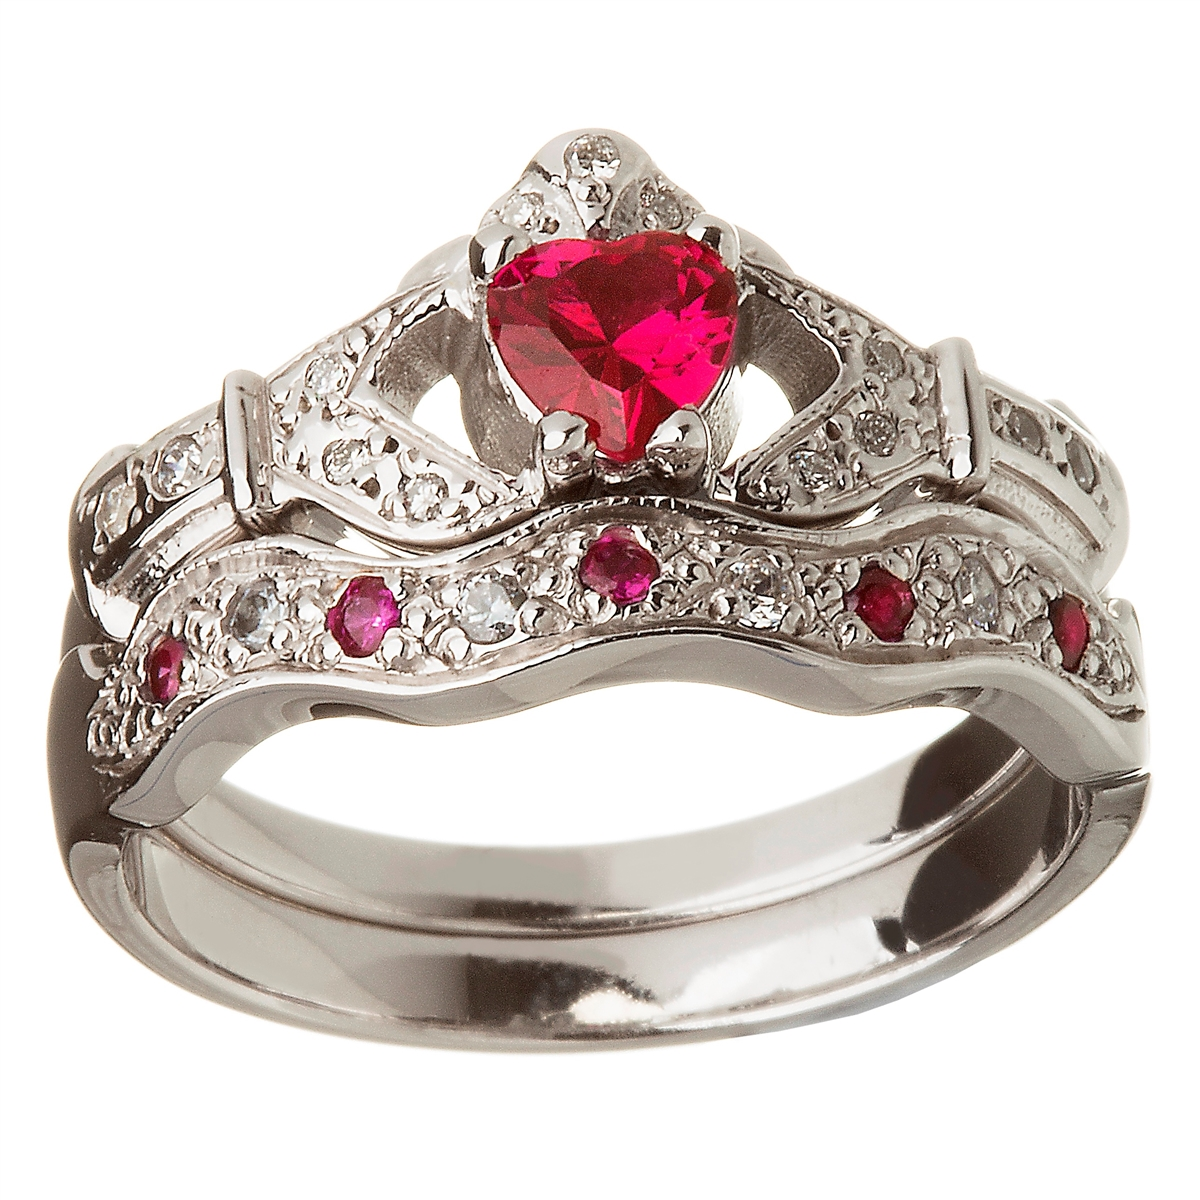 14k white gold ruby set heart claddagh ring wedding ring set - Claddagh Wedding Ring Sets